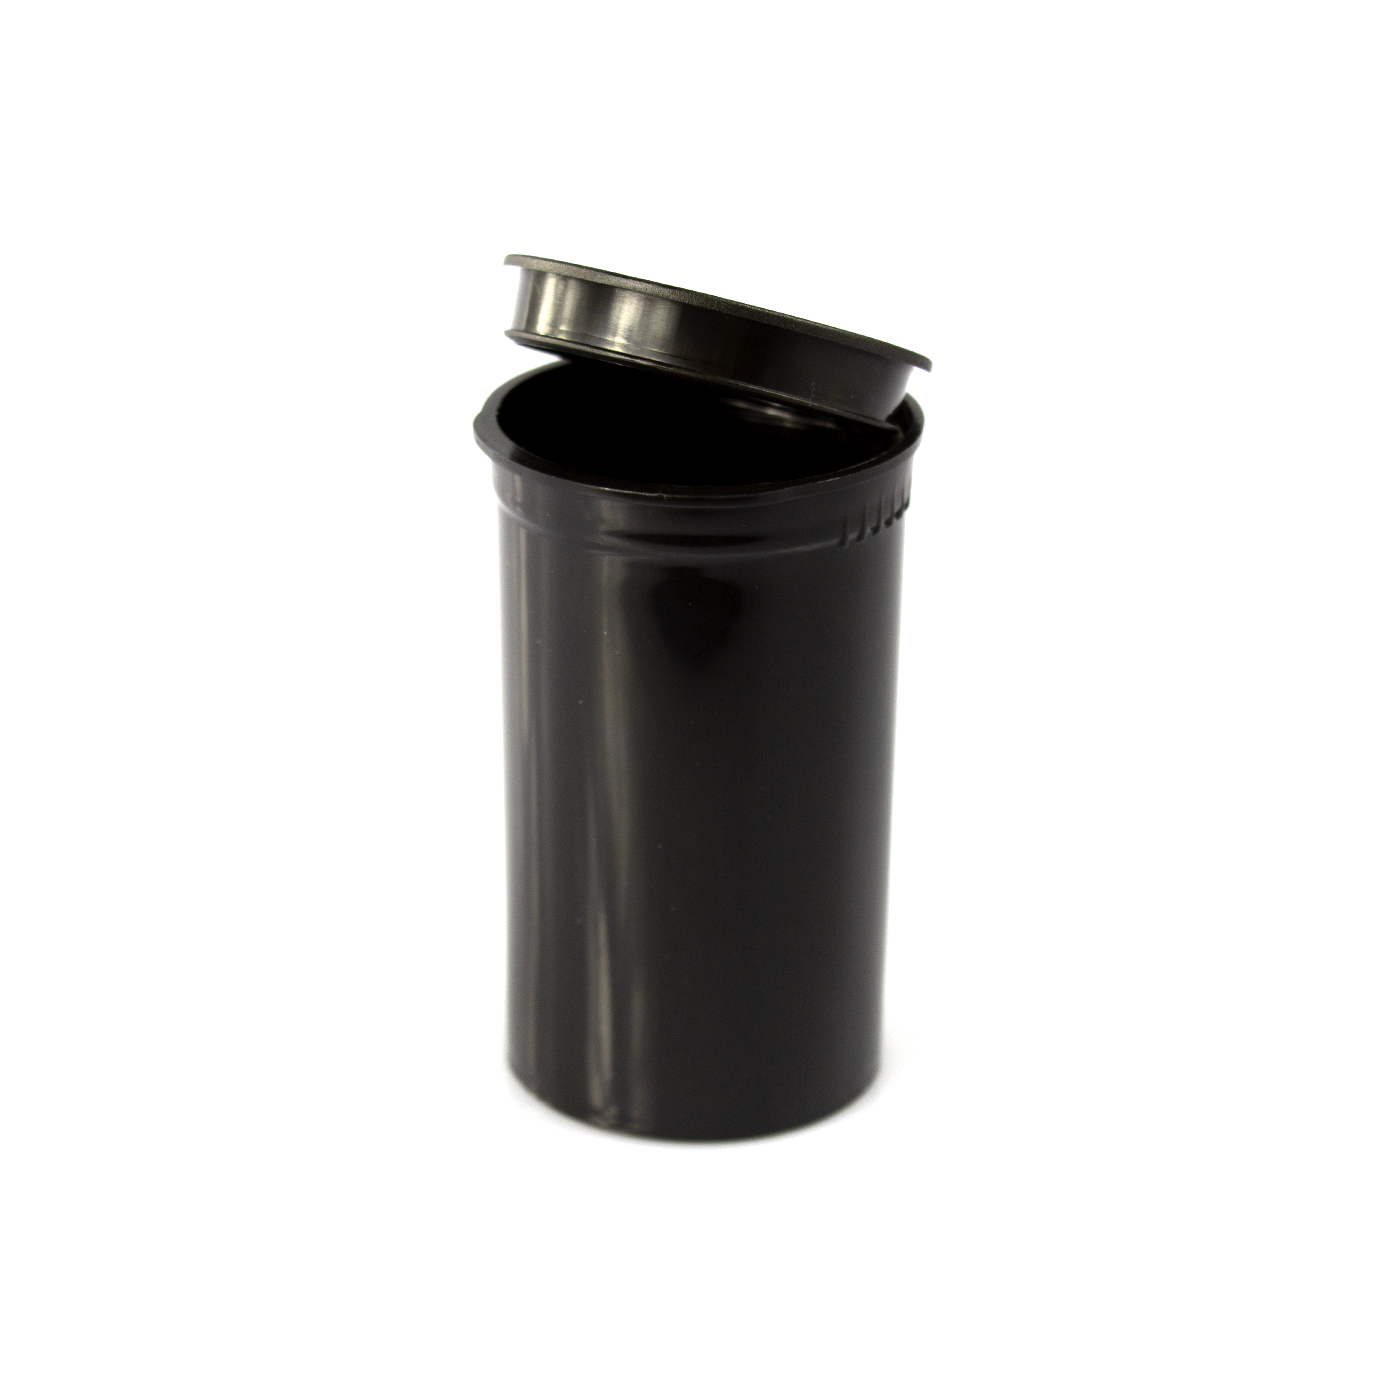 Two Gram - 19 dram - Poptop container black